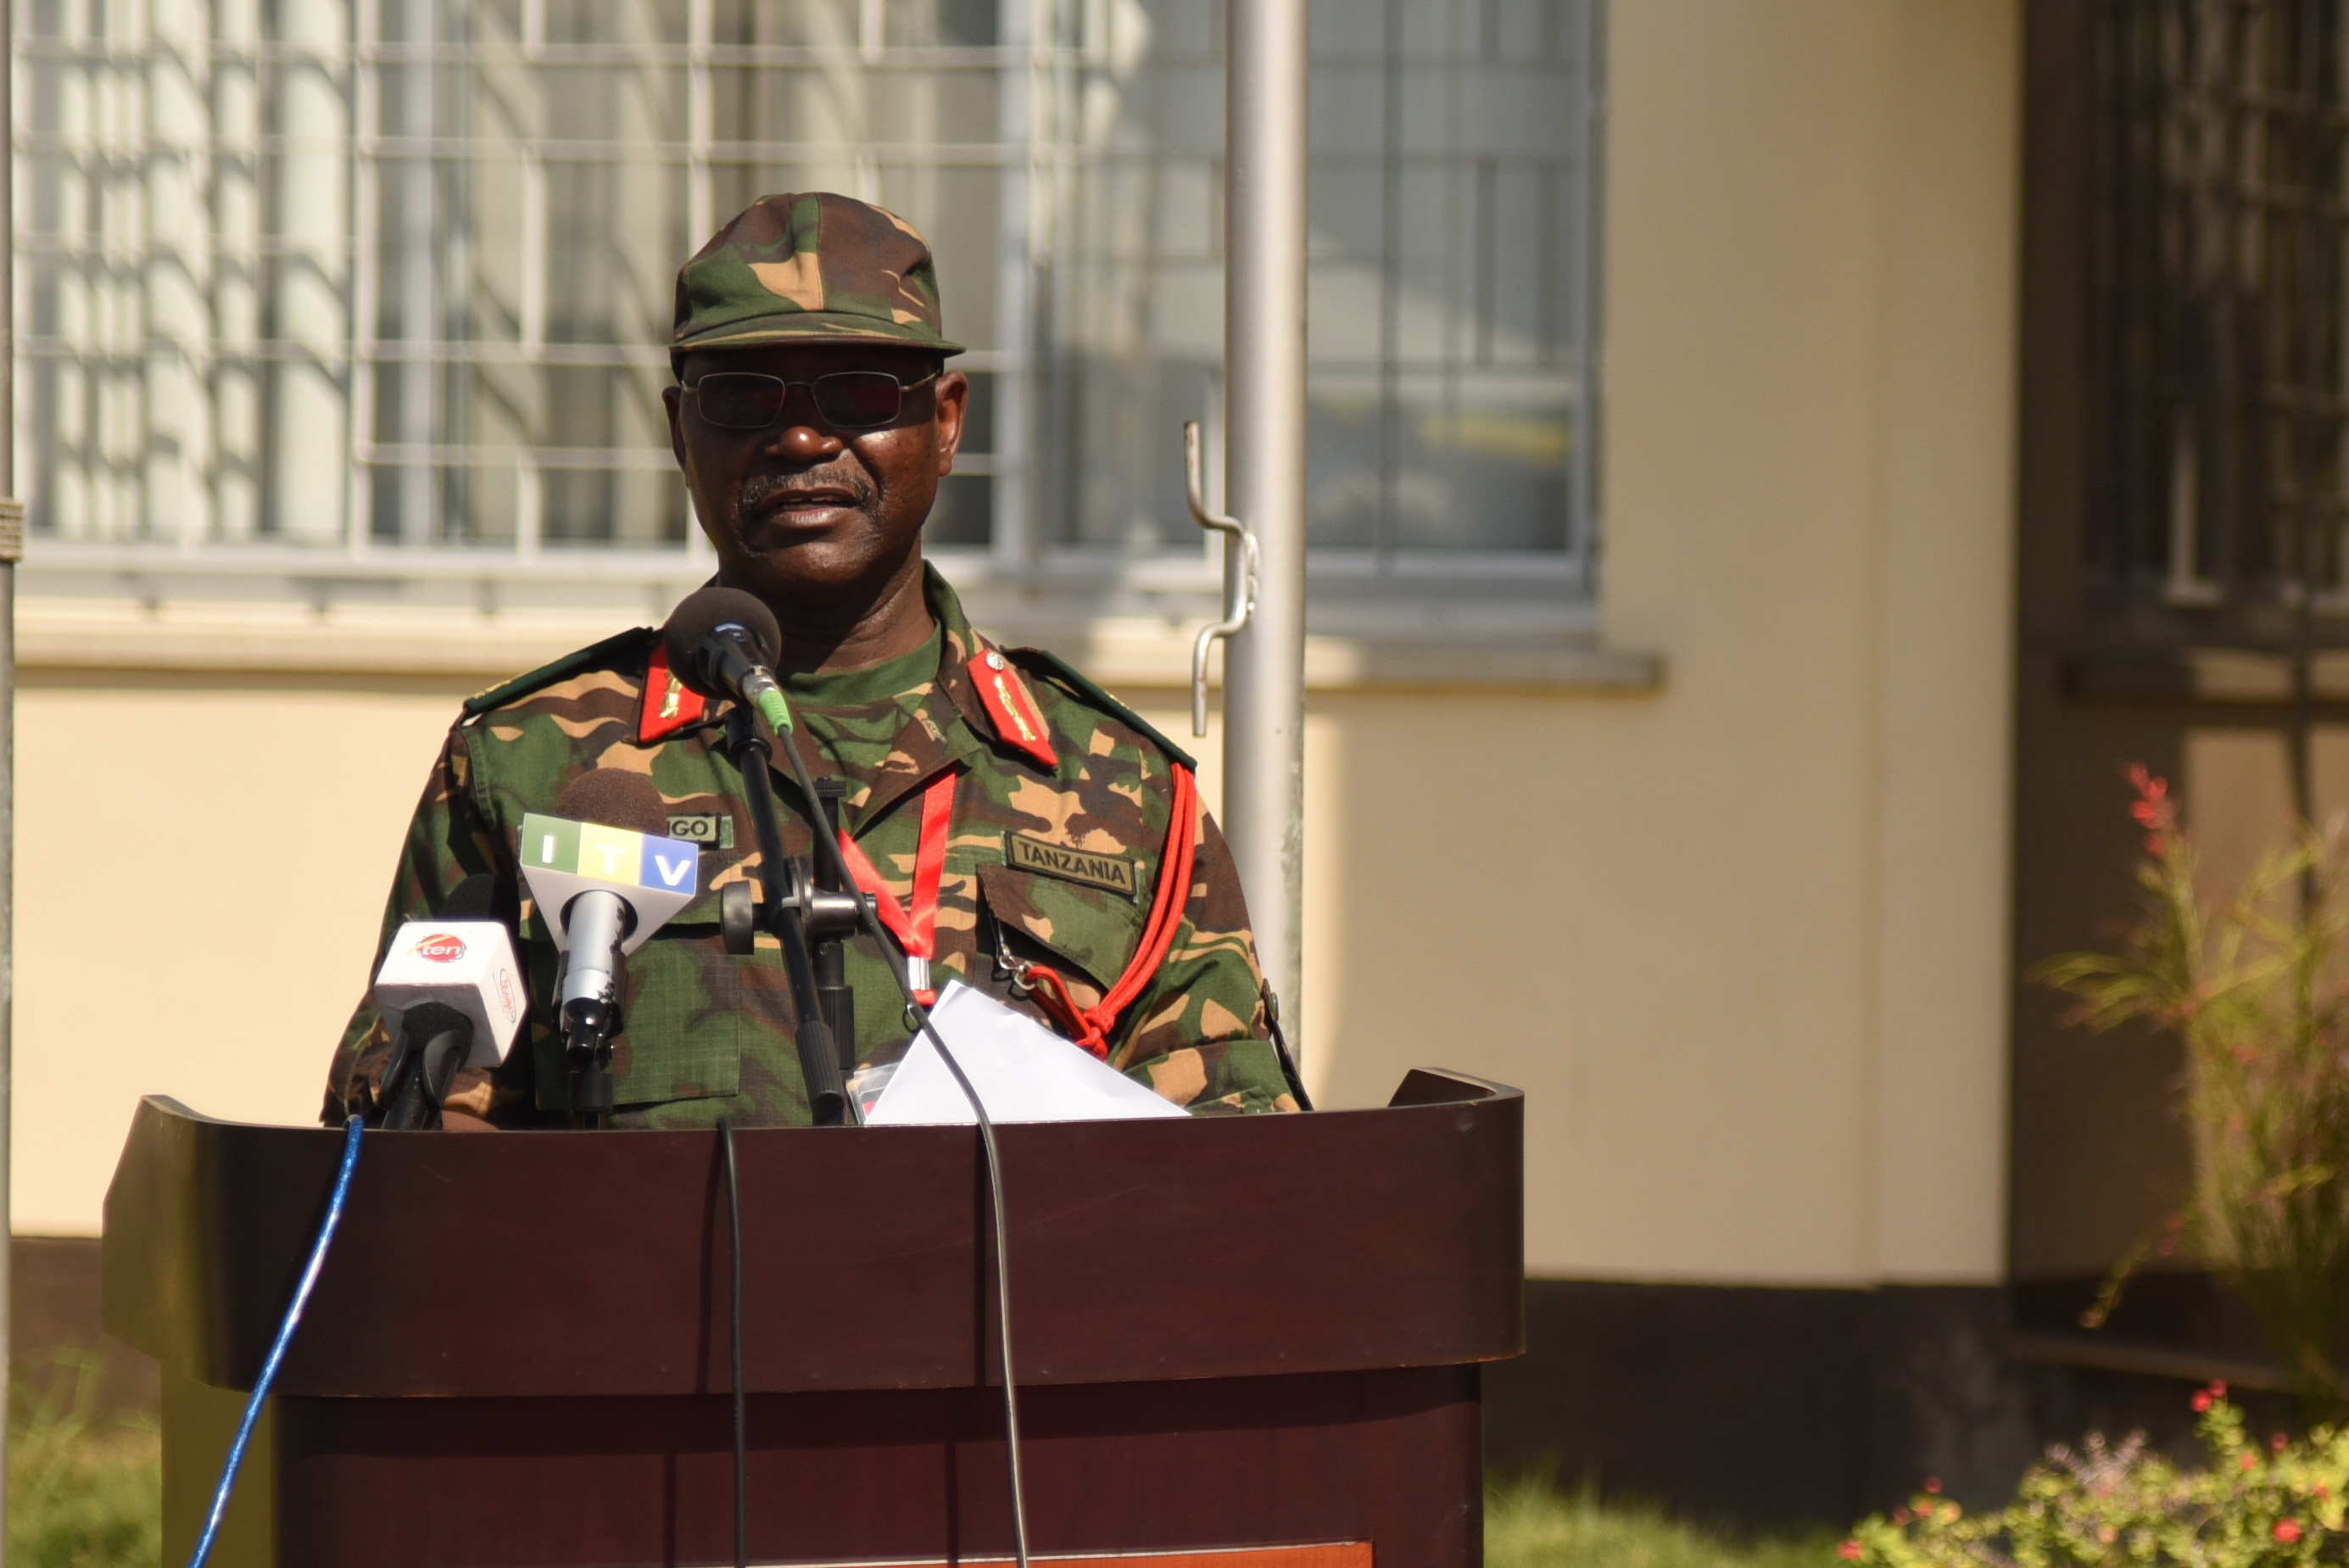 DAR ES SALAAM, Tanzania – Tanzanian Brig. Gen. Yohana Ocholla Mabongo, Eastern Accord 2016 exercise co-director, welcomes the participants to the Eastern Accord 2016 command post exercise during the Opening Ceremony at the Tanzanian Peacekeeping Training Centre on July, 11, 2016, in Dar es Salaam, Tanzania. EA16 is an annual, combined, joint military exercise that brings together partner nations to practice and demonstrate proficiency in conducting peacekeeping operations. (U.S. Air Force photo by Staff Sgt. Tiffany DeNault/Released)